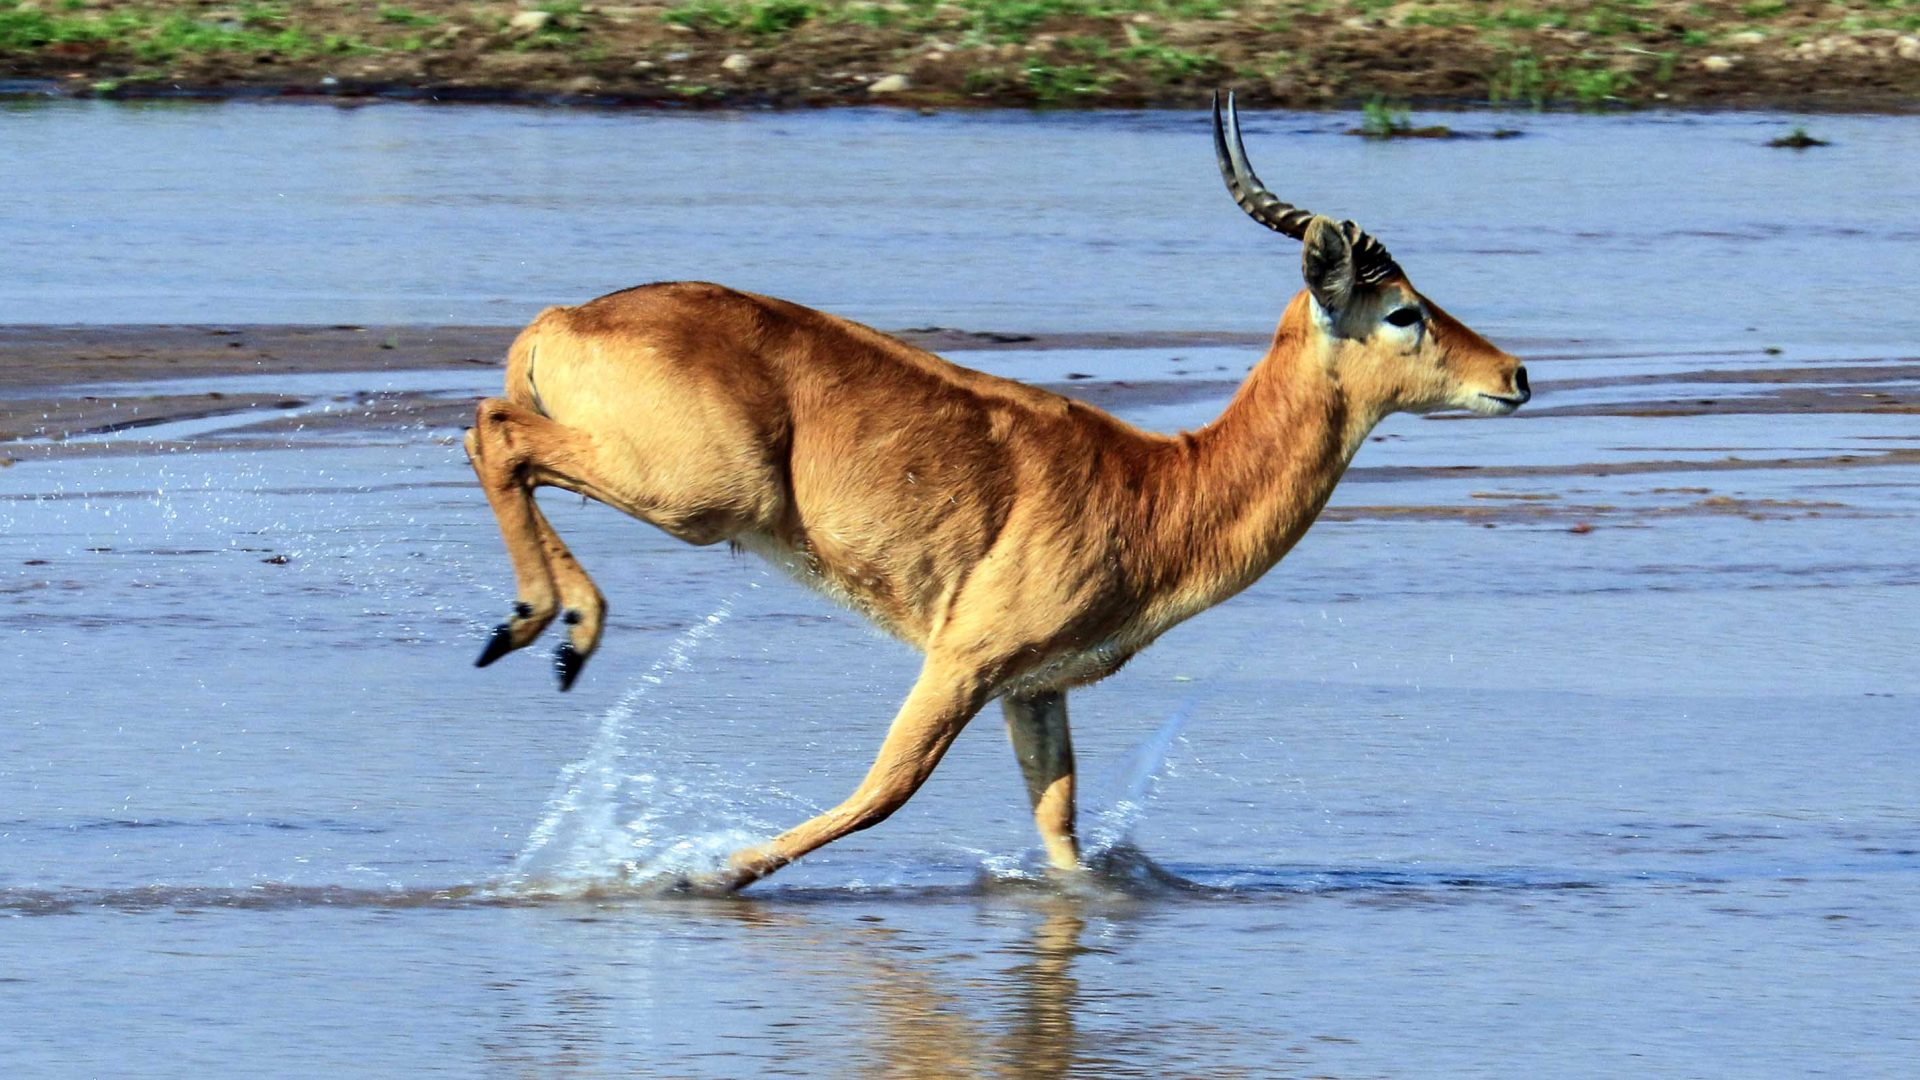 A male puku runs through a shallow part of the Luangwa river.